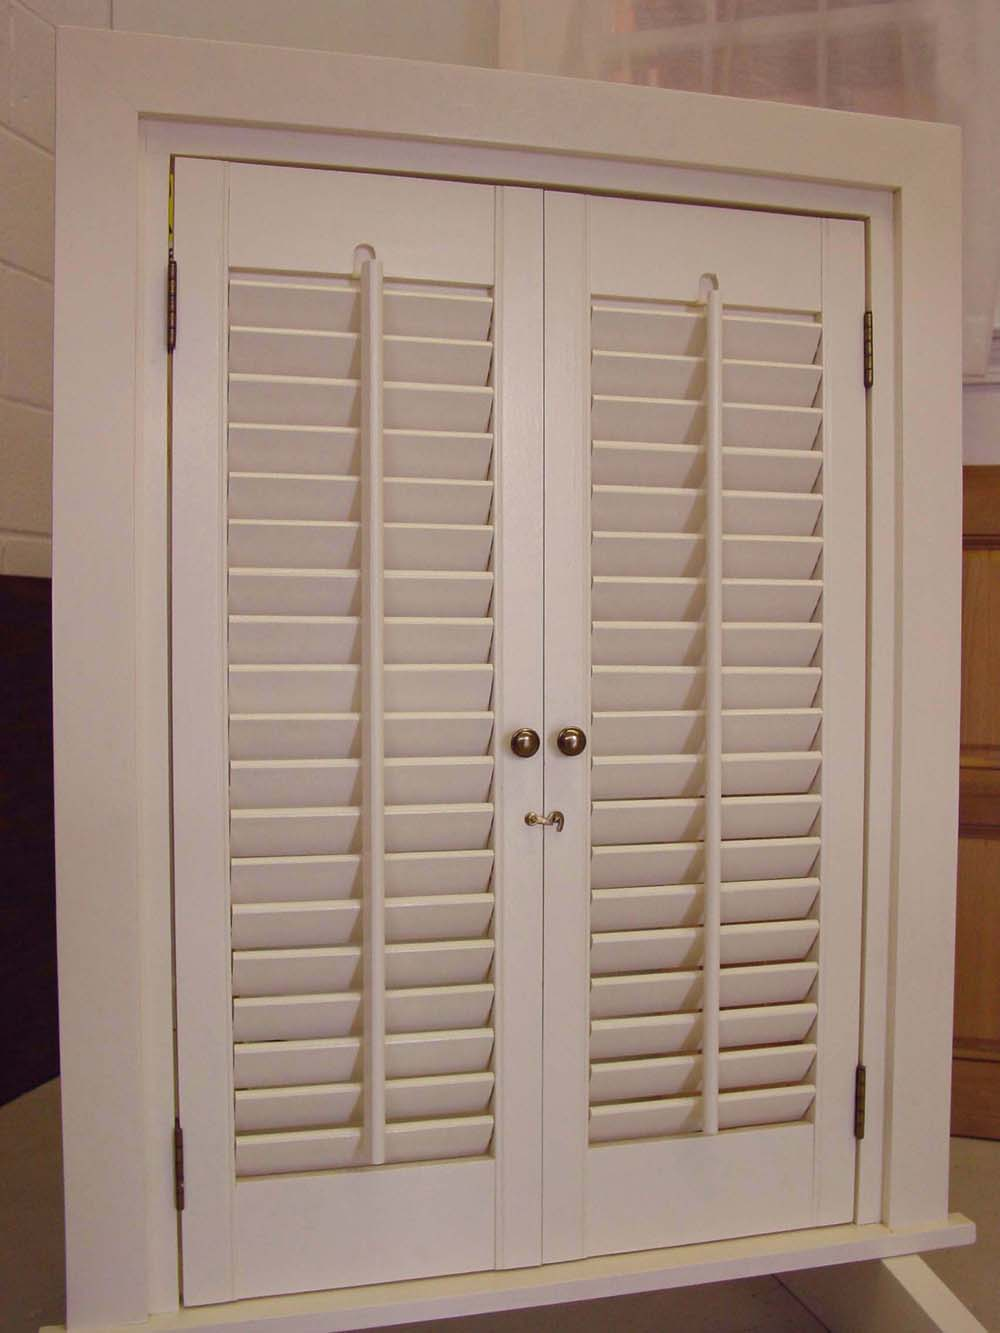 Shuttercraft interior shutters for Interieur shutters